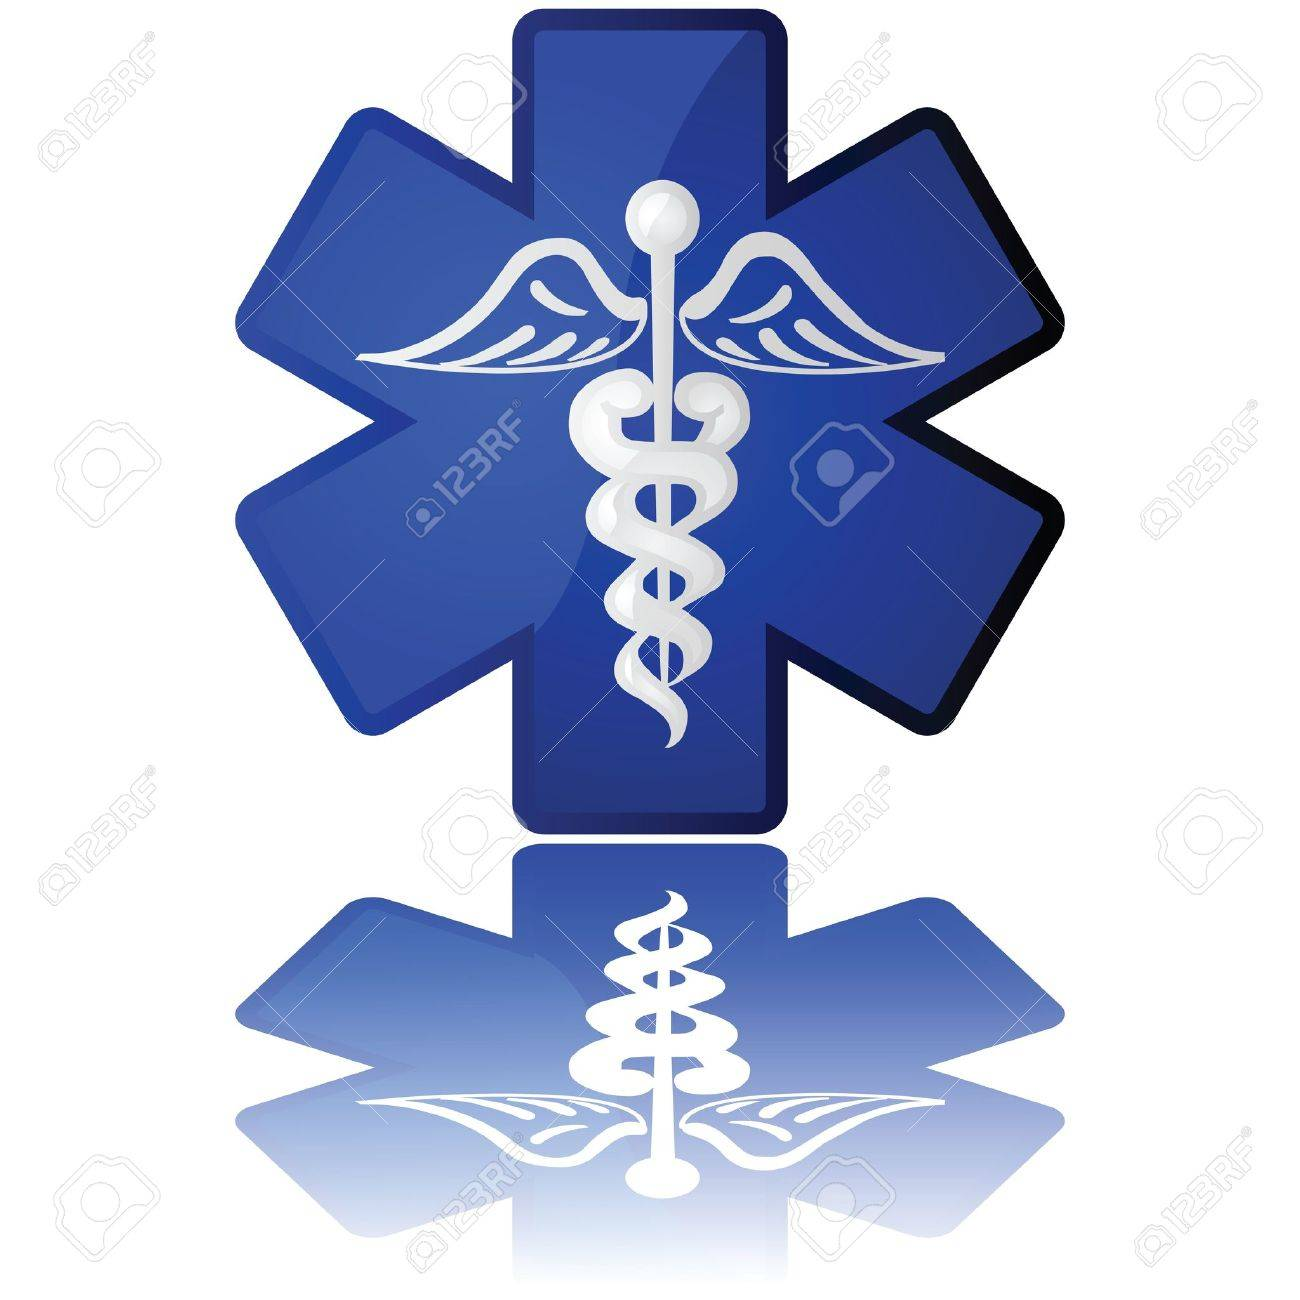 Glossy illustration in white and blue showing a medical icon Stock Vector - 9473881